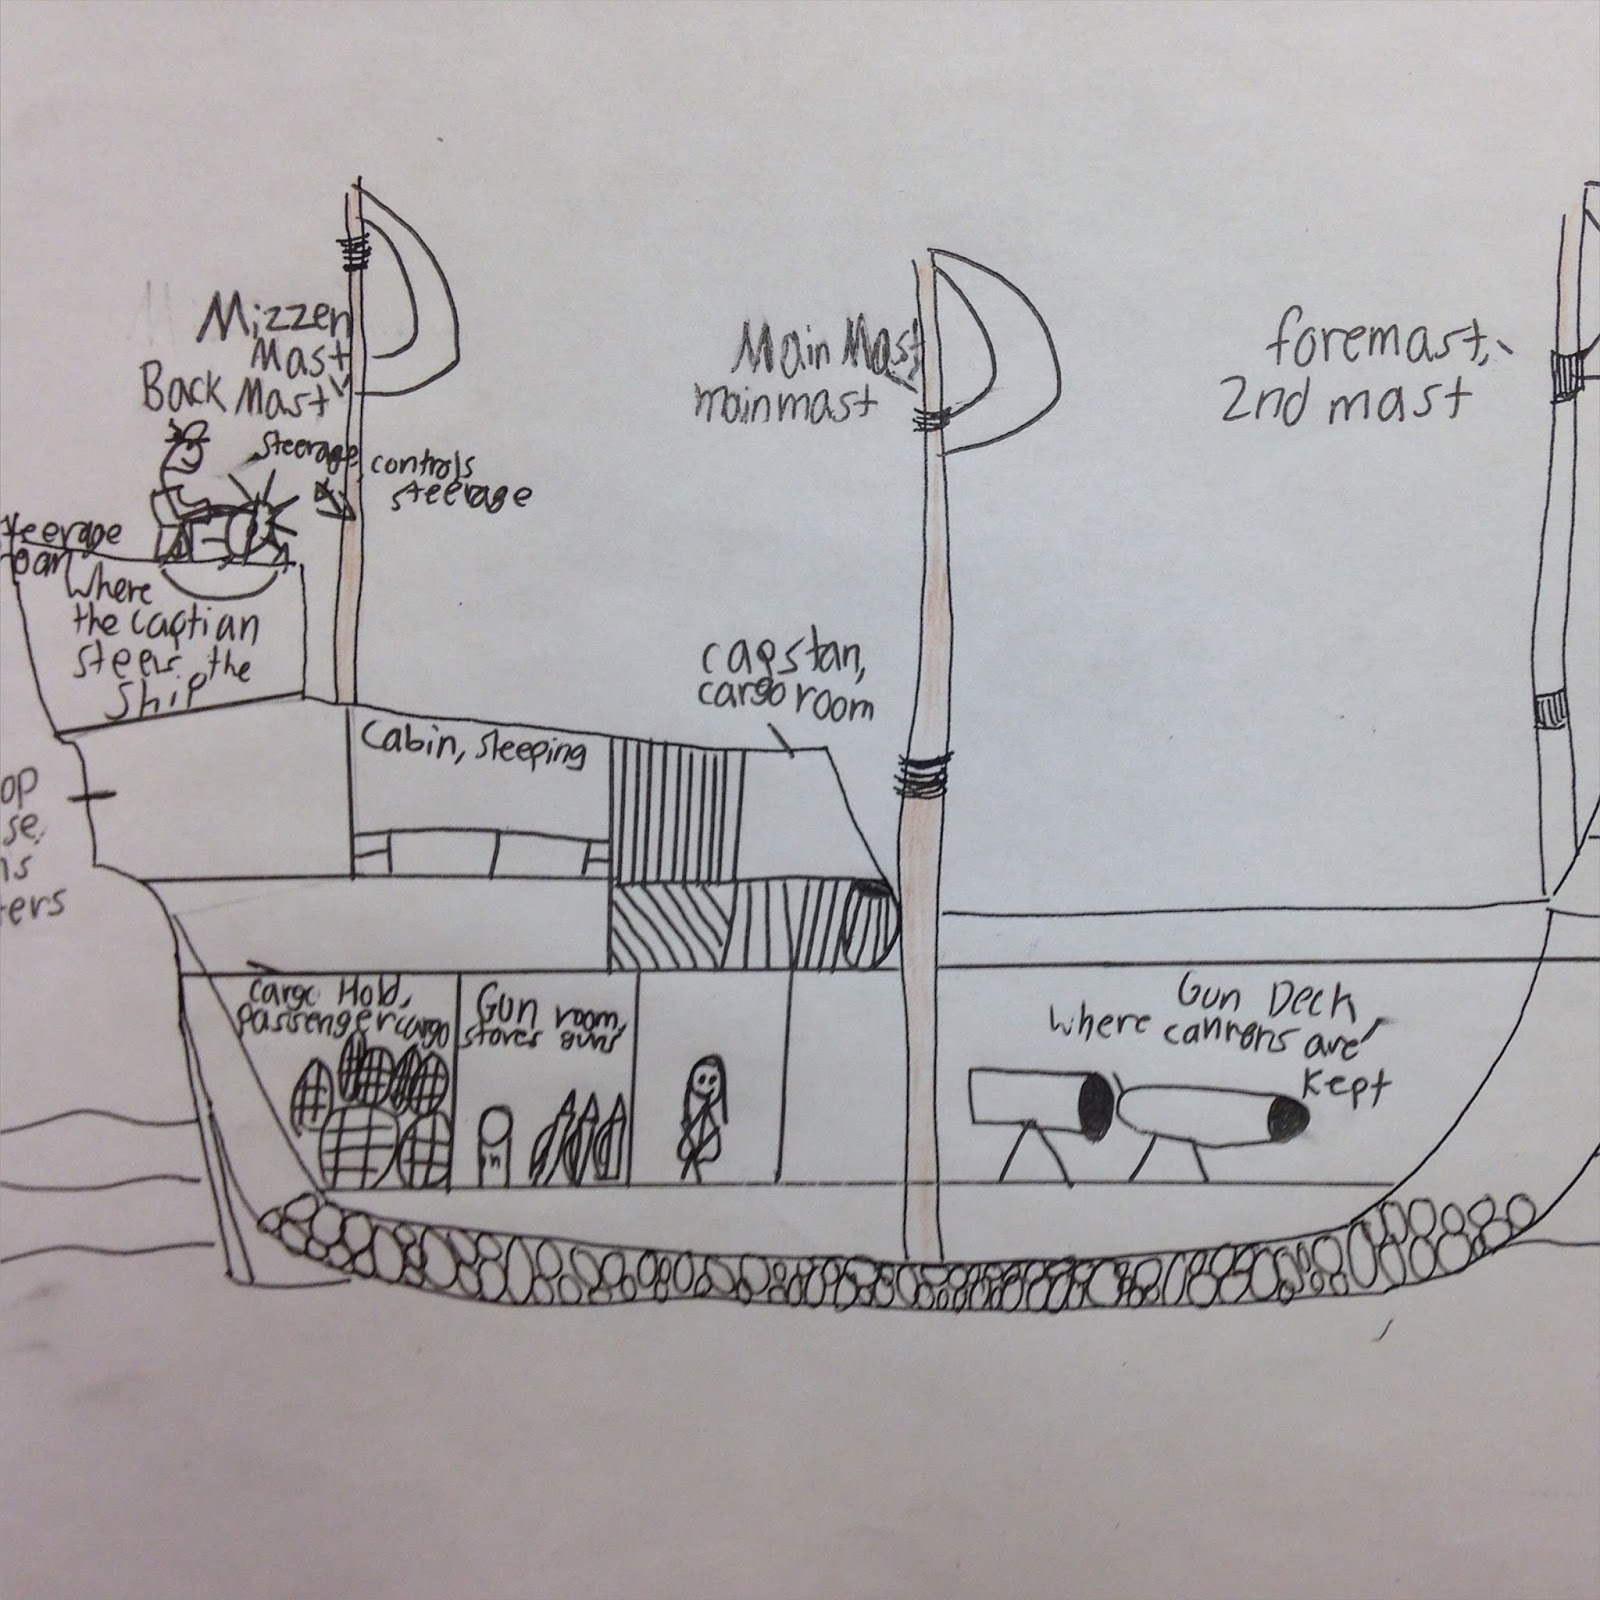 hight resolution of  creating cutaway mayflower diagrams with 14 main ship parts labeled we defined the ship parts first and then searched mayflower diagrams and pictures